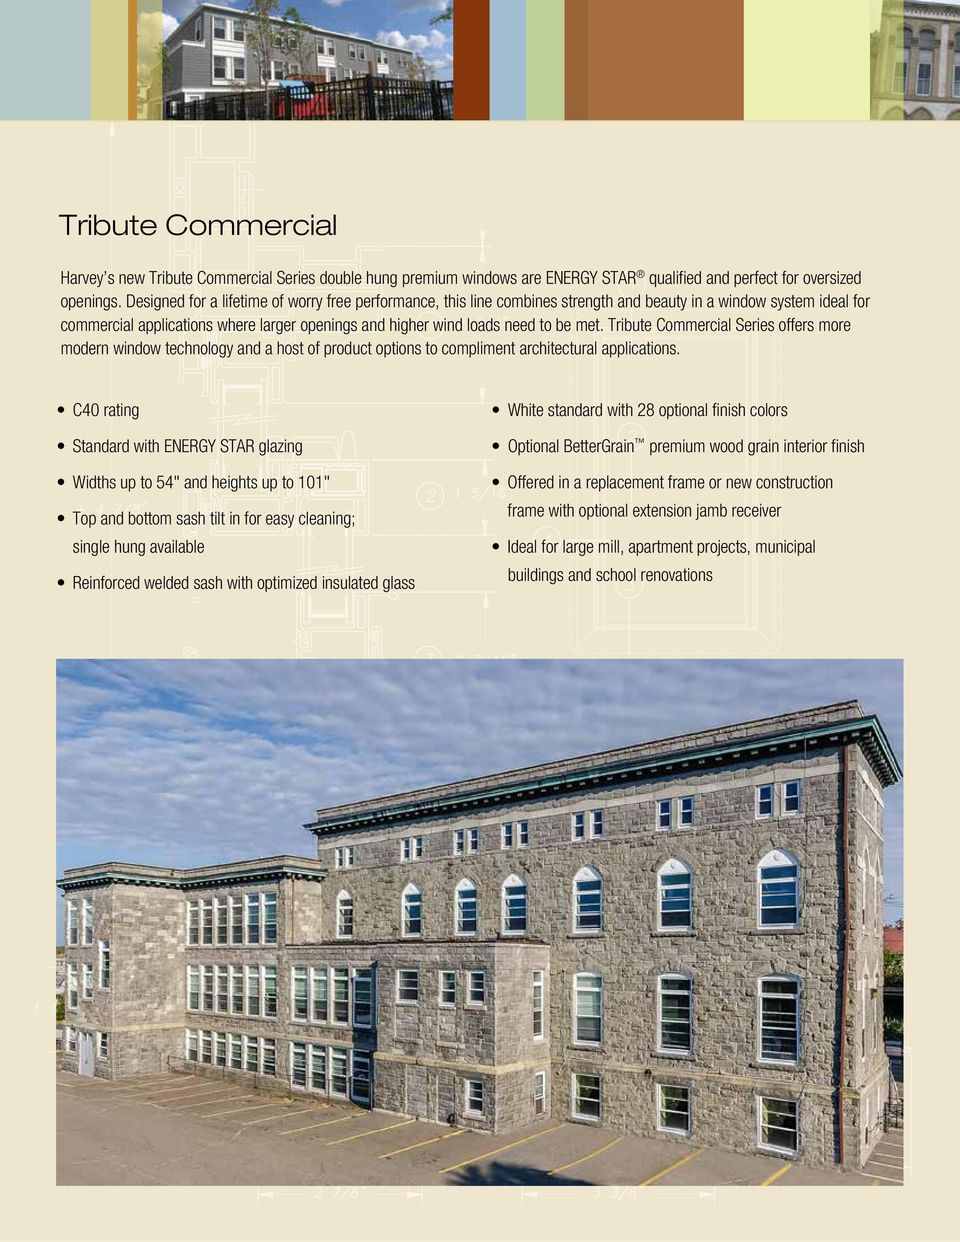 met. Tribute Commercial Series offers more modern window technology and a host of product options to compliment architectural applications.